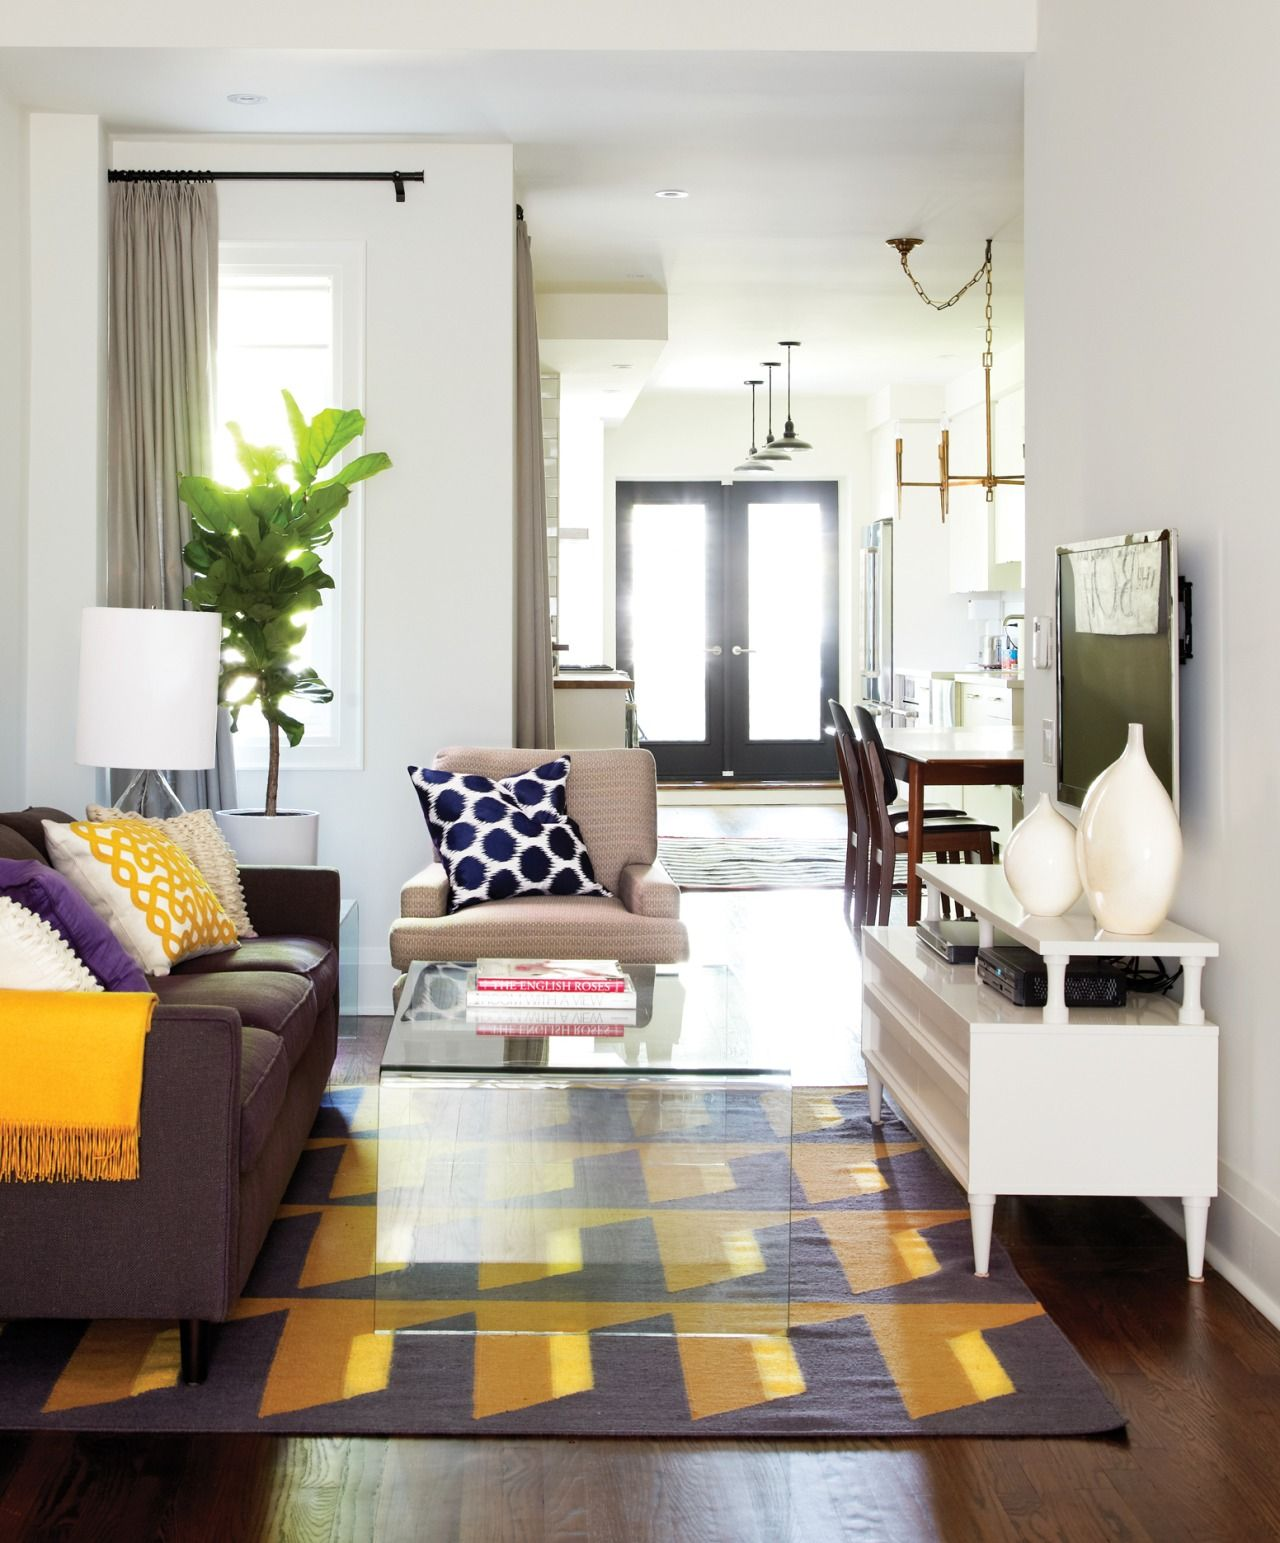 Design tips to make a room look bigger and more decor ...